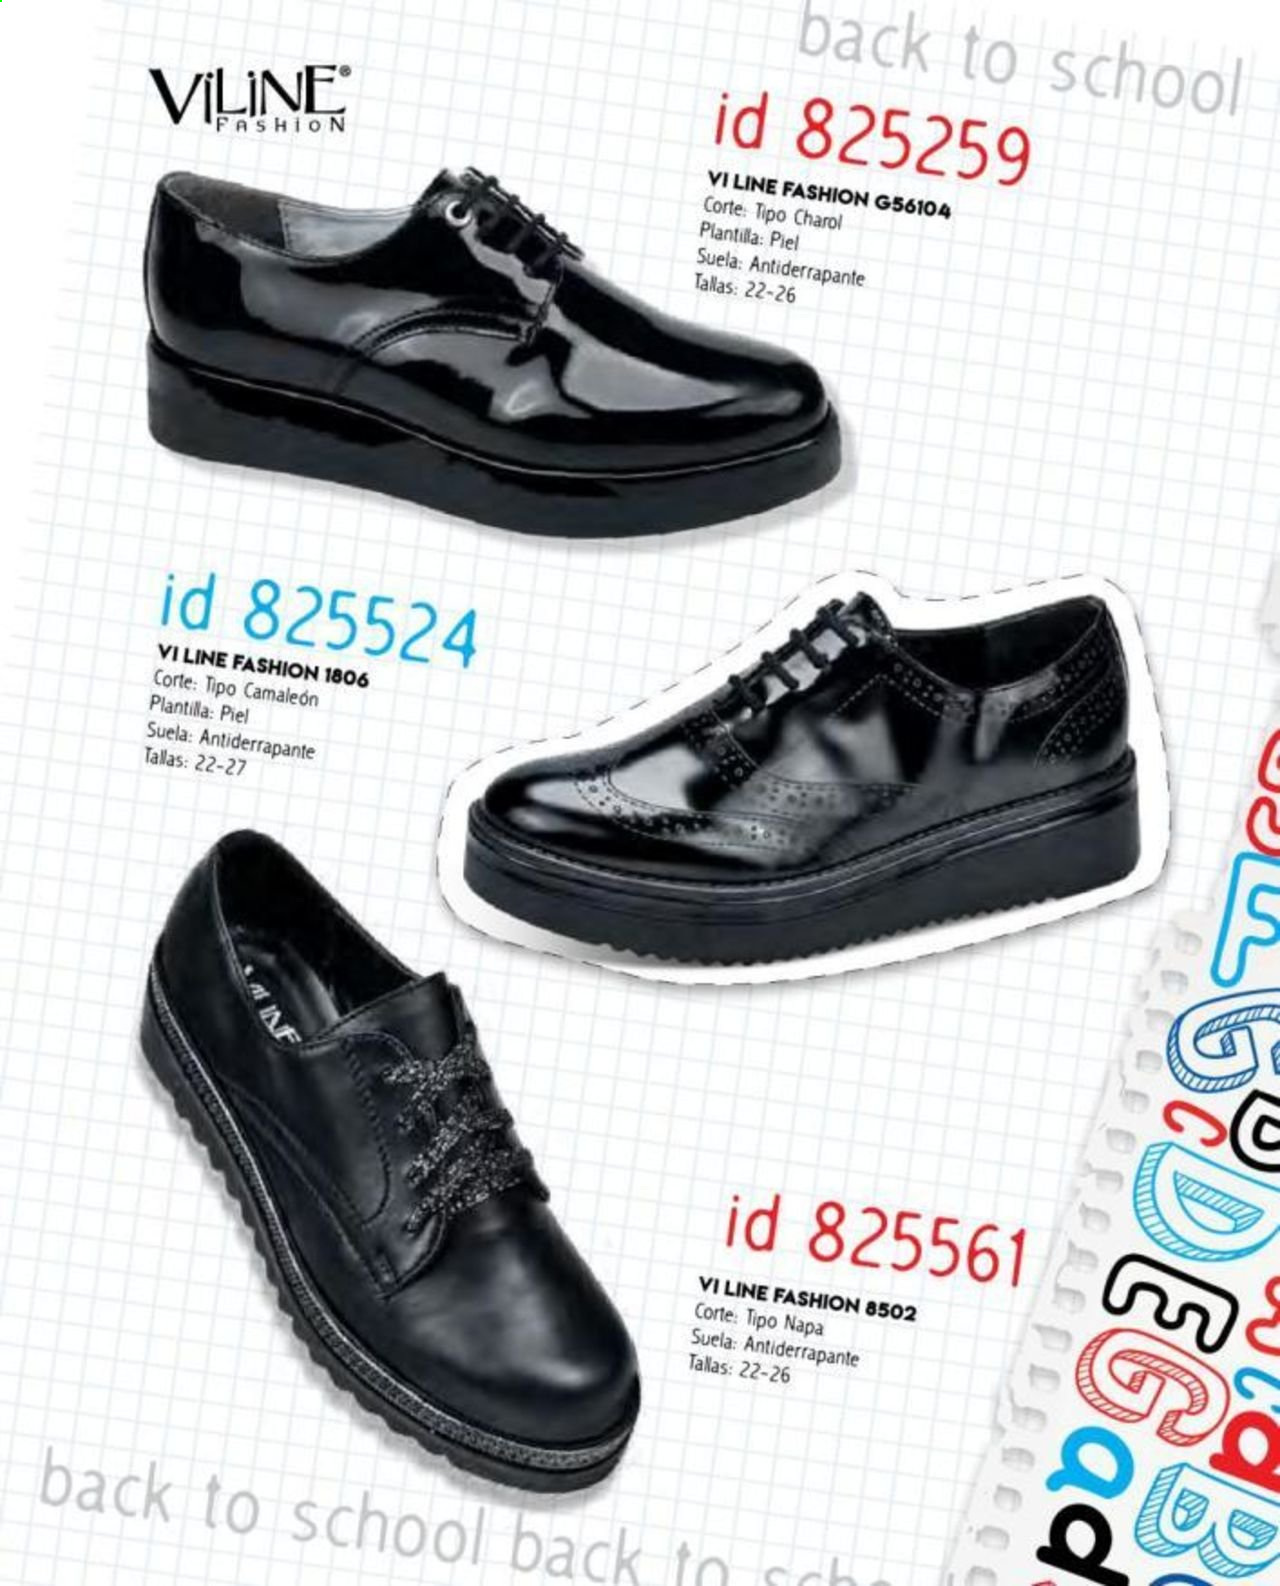 Oferta vigente Price Shoes. Página 172.